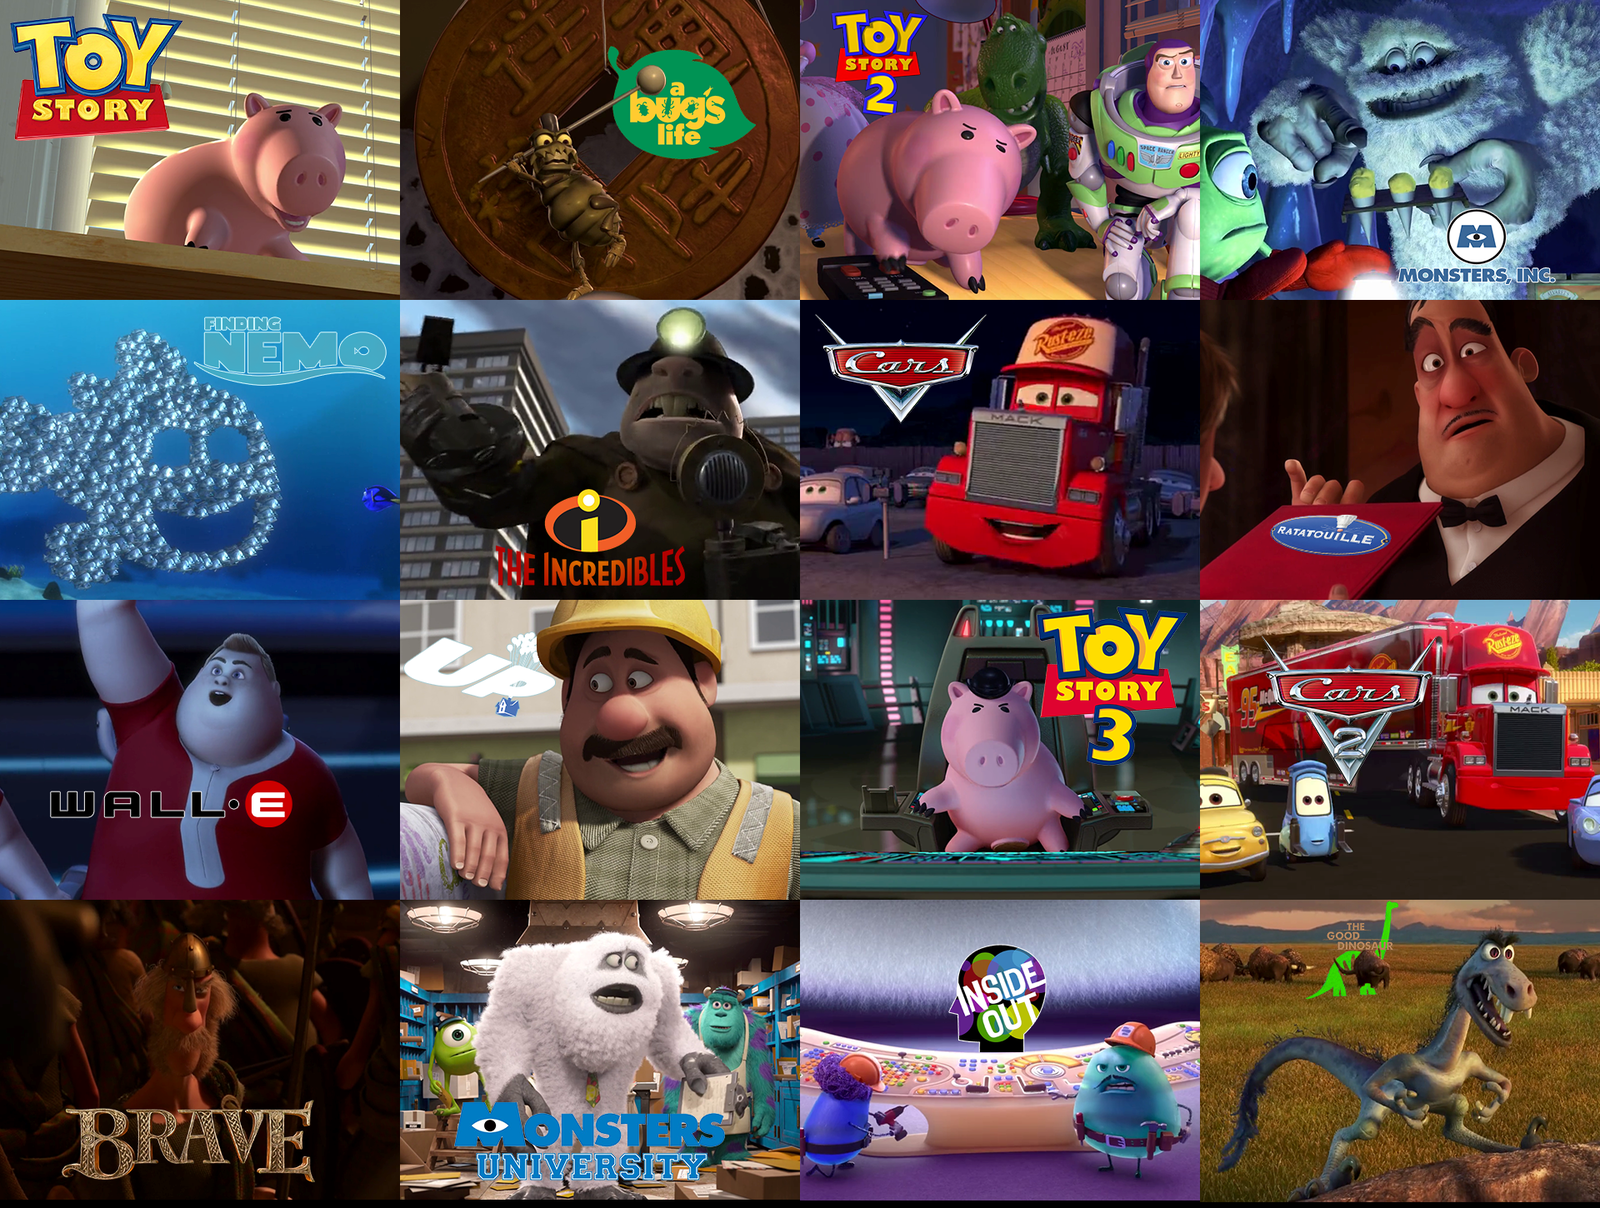 17 Completely Insane Pixar Movie Facts You Didn't Know Till Now